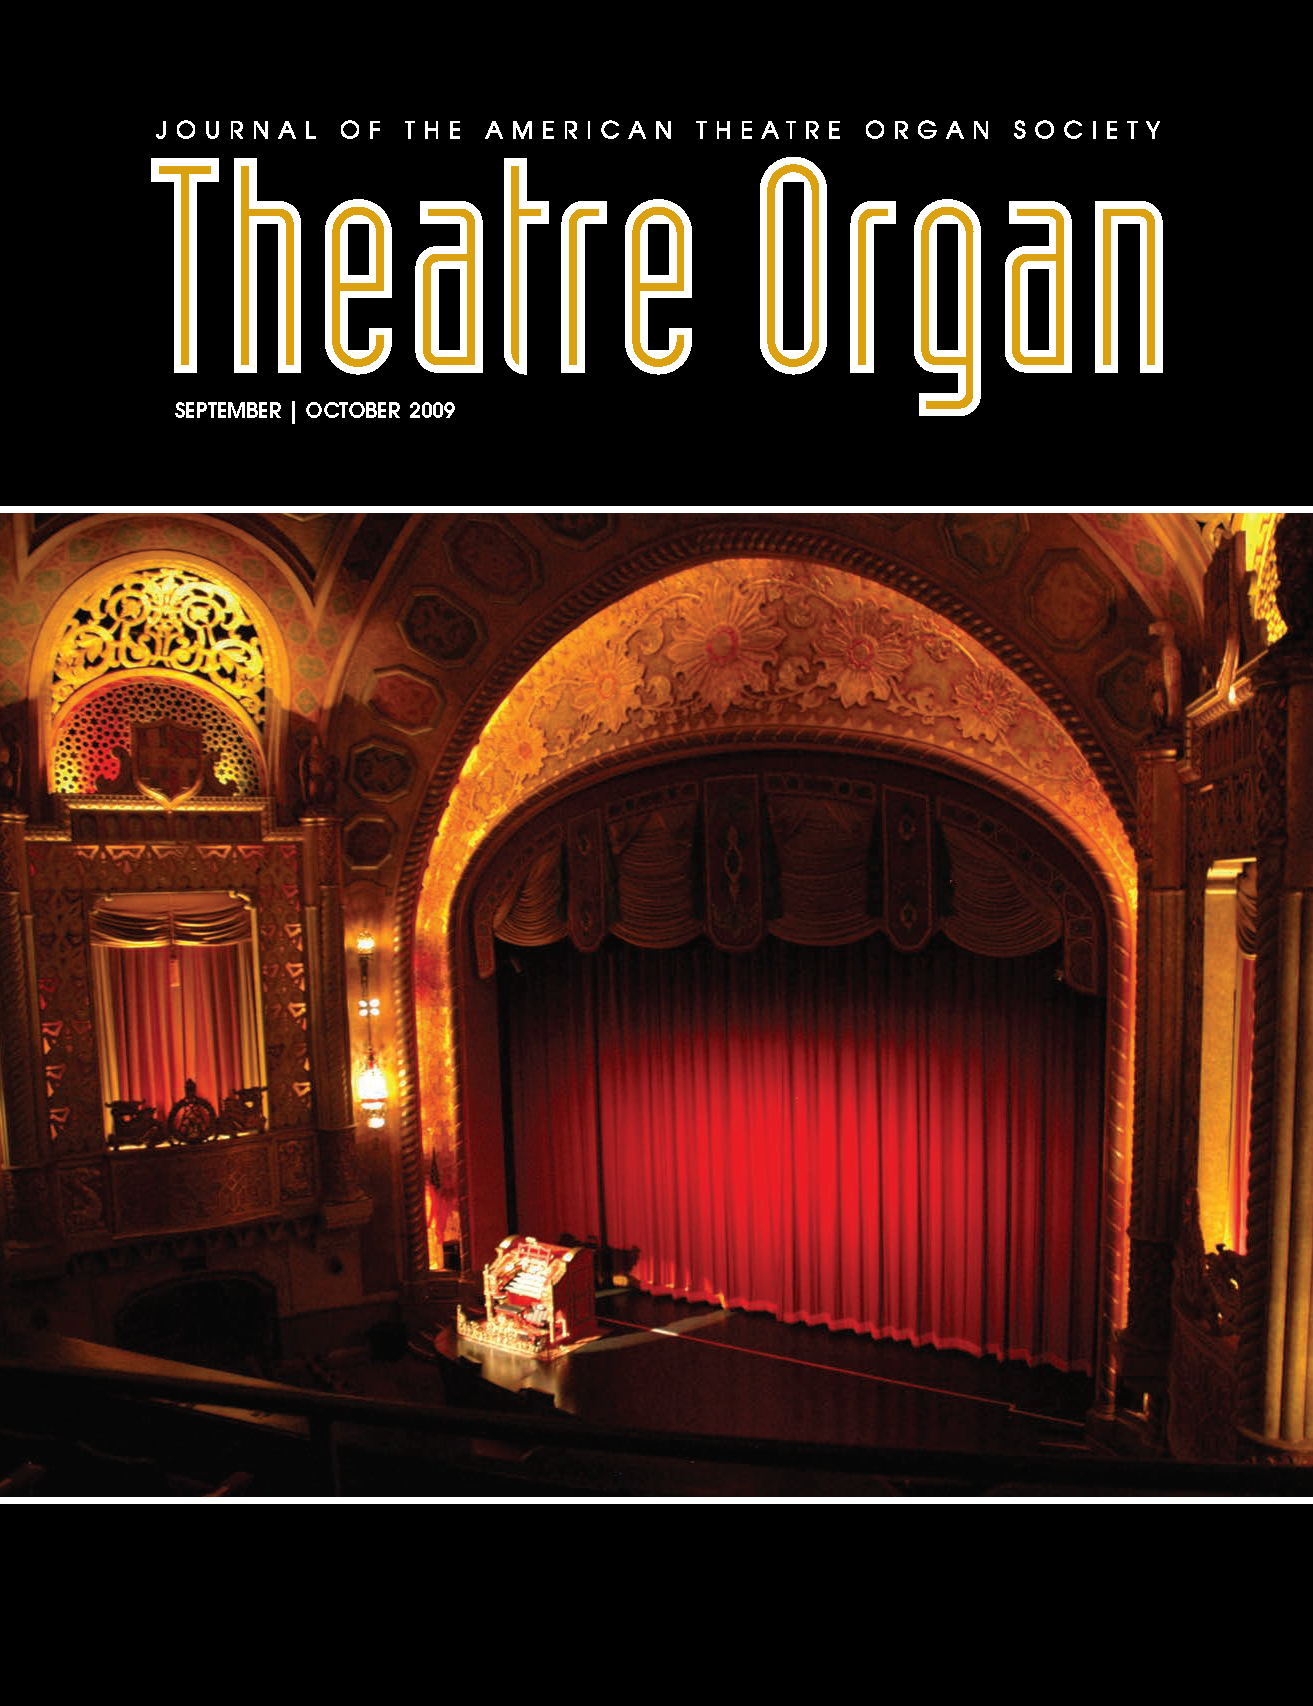 Theatre Organ, September - October 2009, Volume 51, Number 5